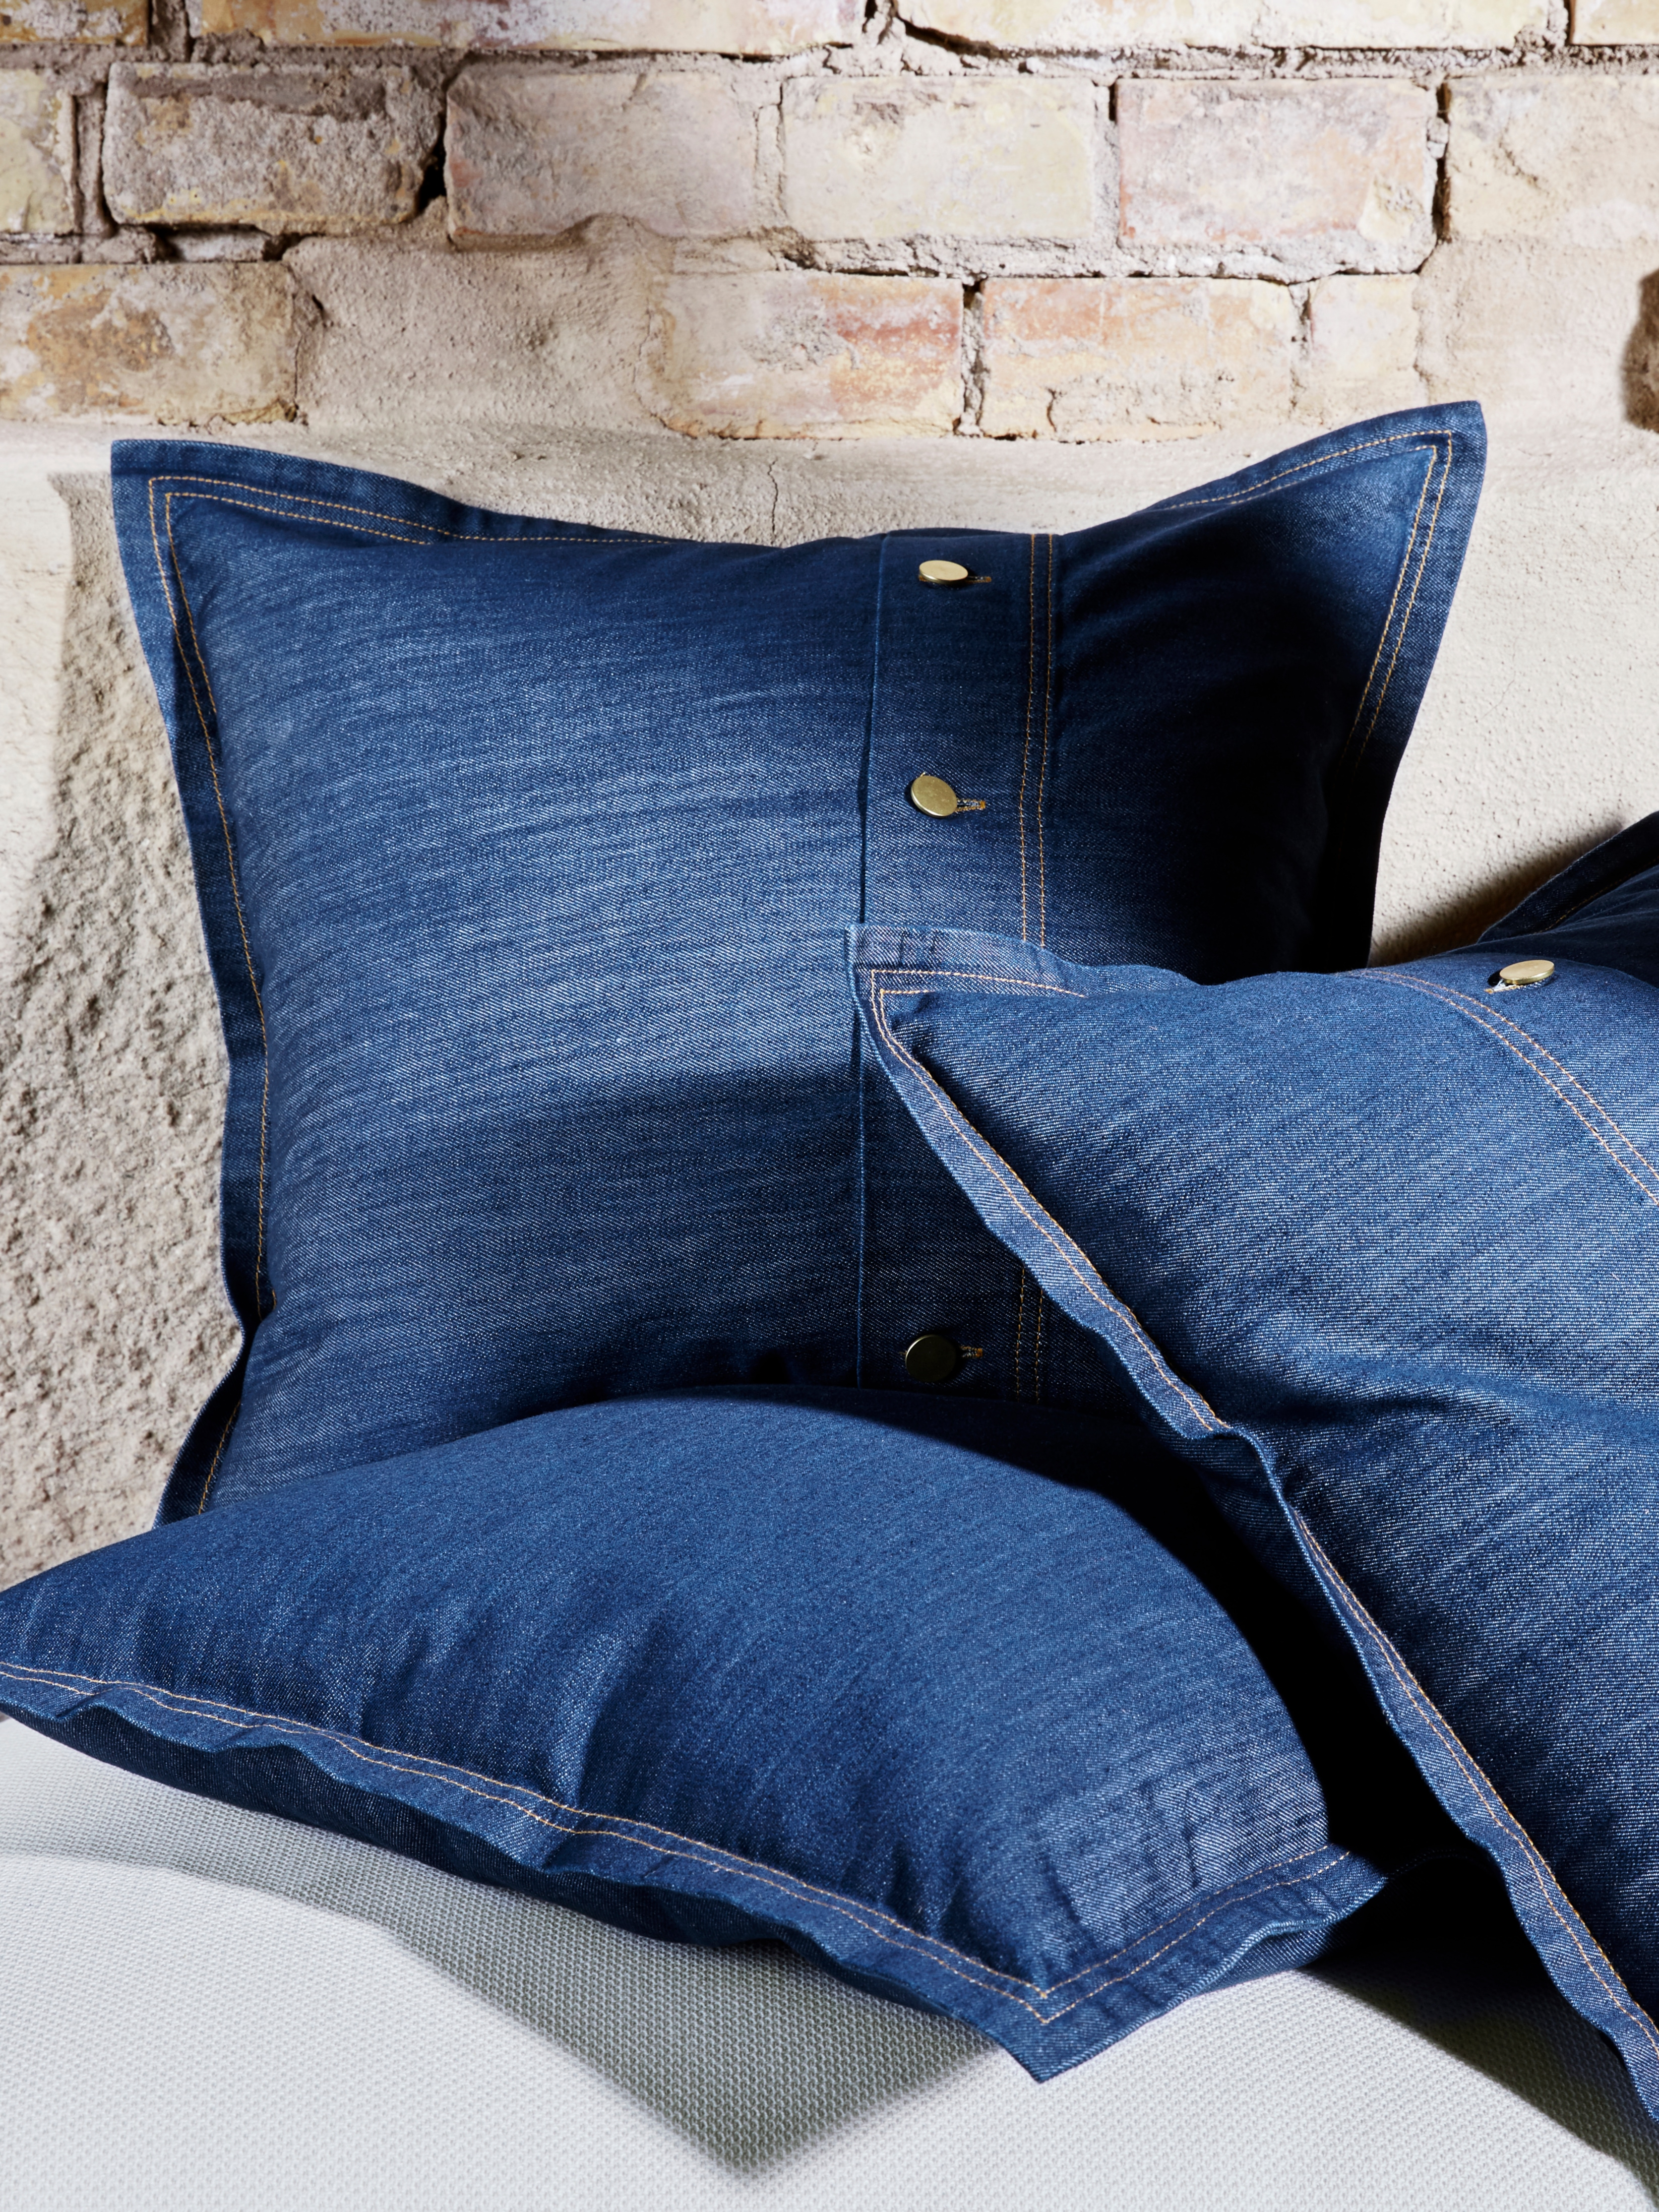 Three SISSIL cushion covers, with dyed blue denim and jean-inspired golden buttons and stitching details.